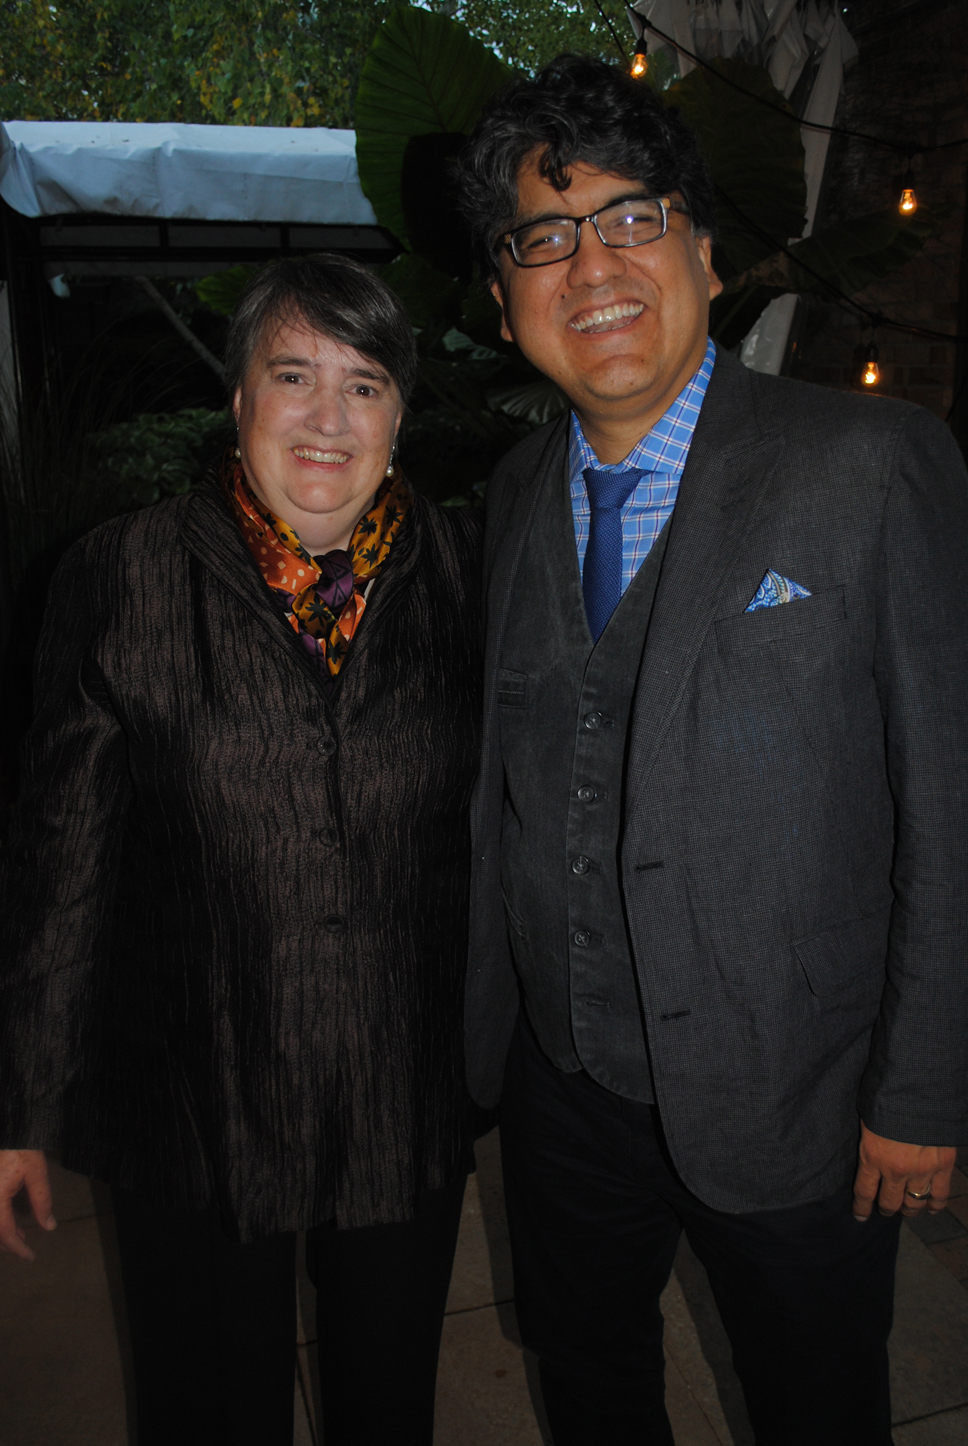 From left: Ann Merritt (Glenview) and author Sherman Alexie. Photo by Dennis Tuskan.